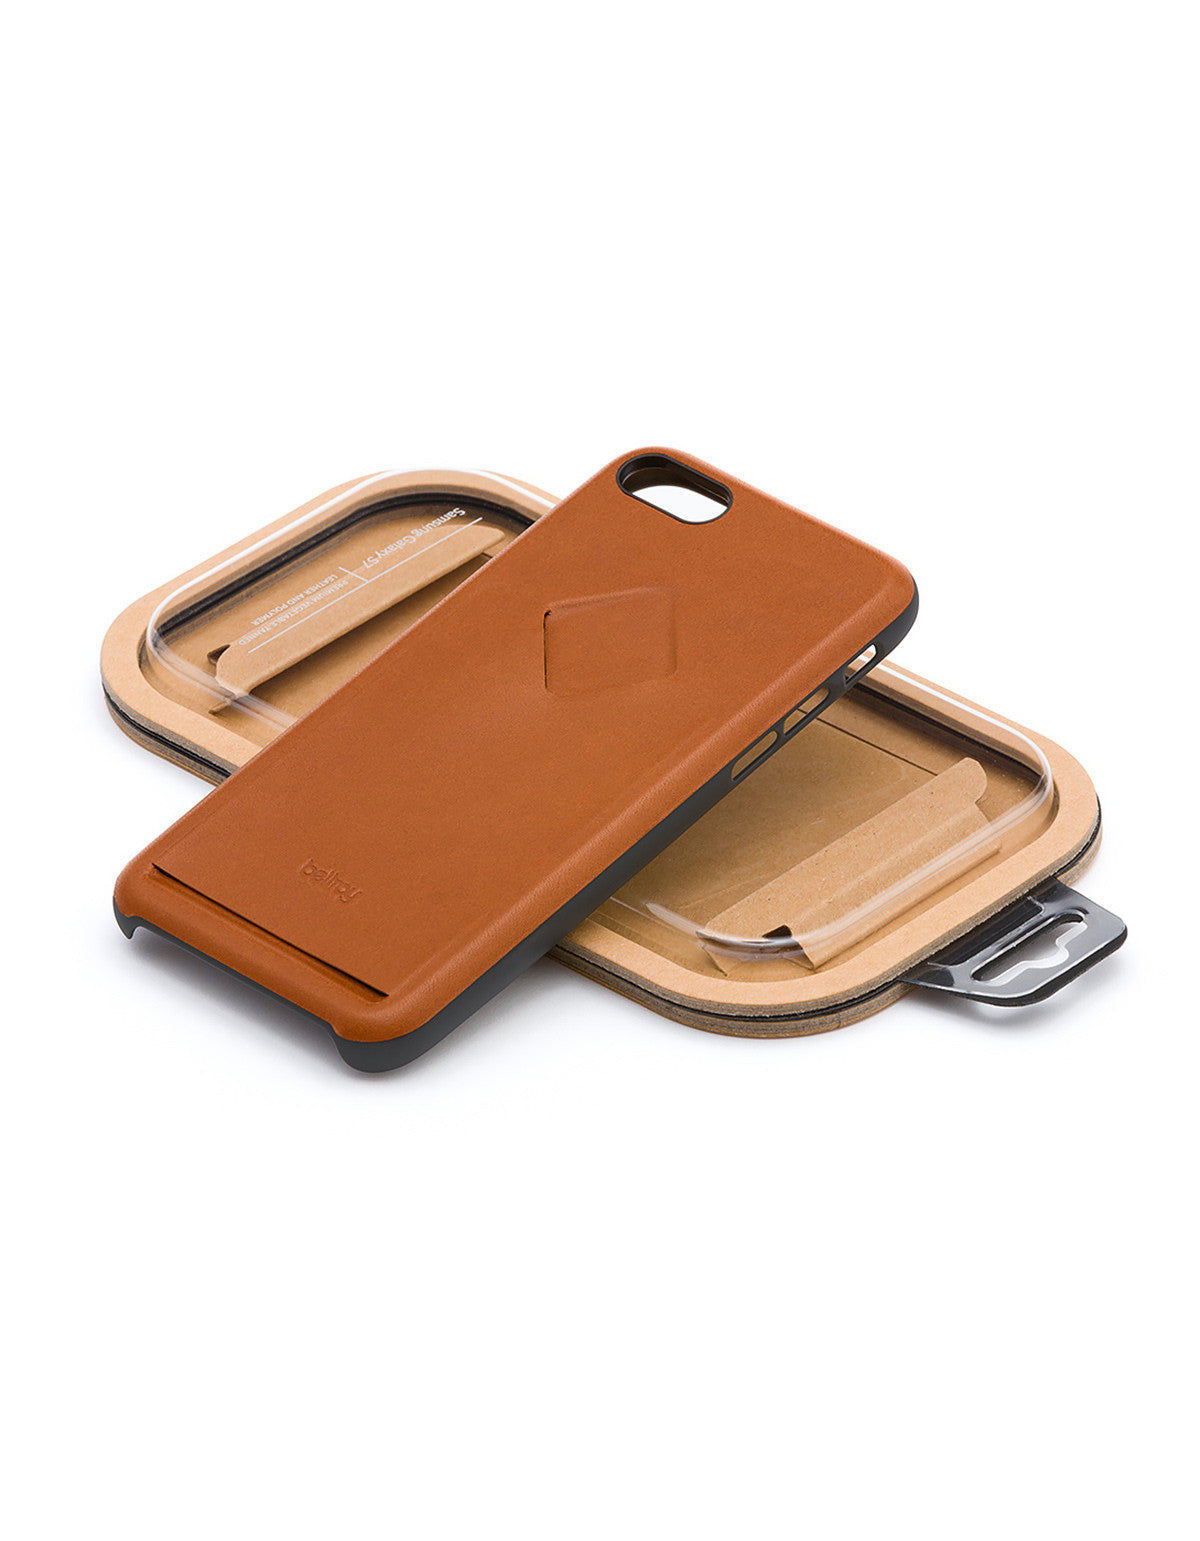 Bellroy Phone Case i7 1 Card Caramel - Still Life - 4